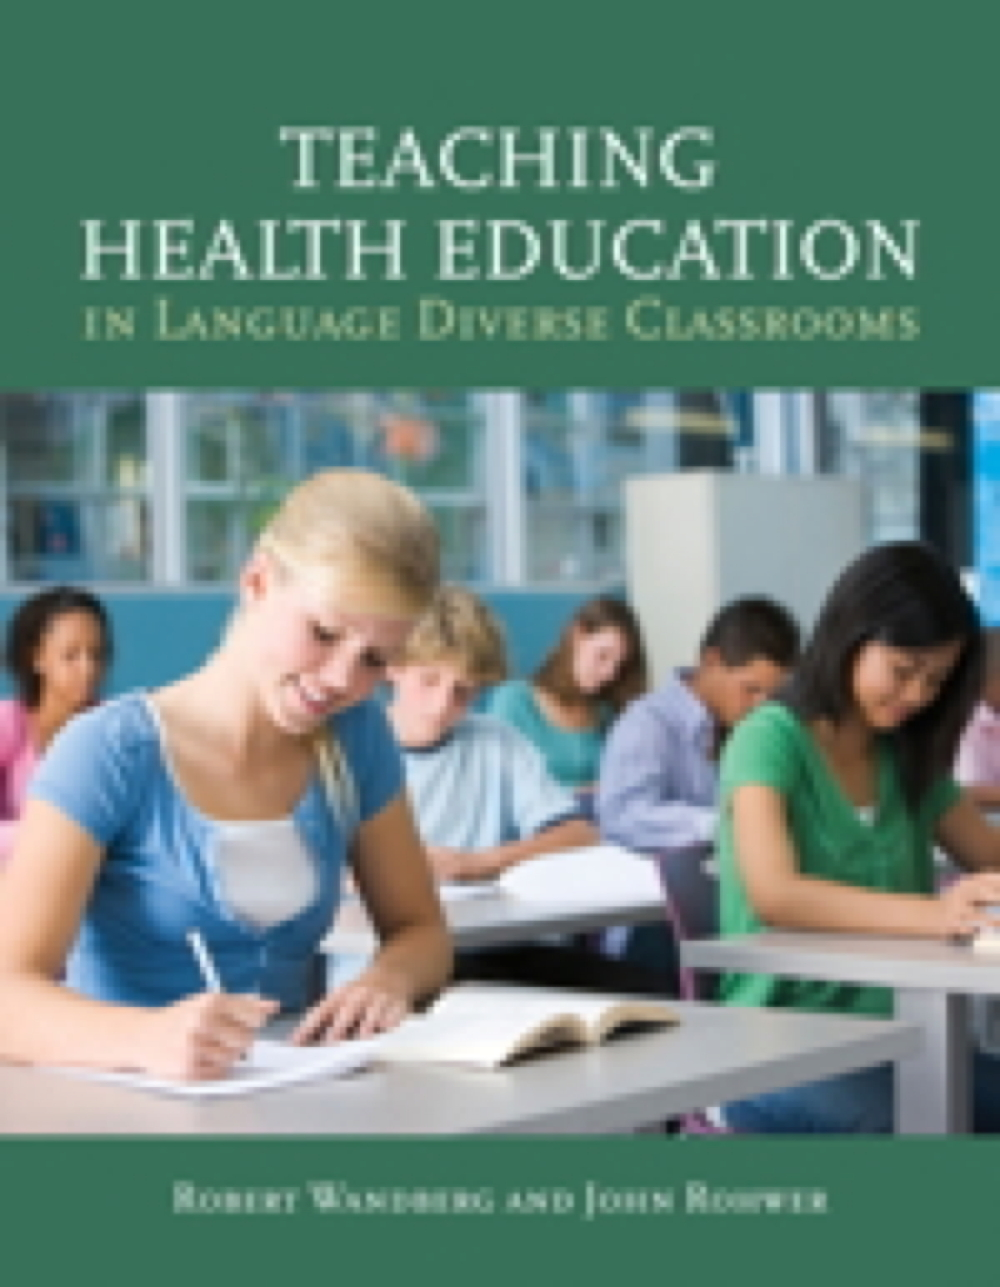 Teaching Health Education In Language Diverse Classrooms - 9780763749453